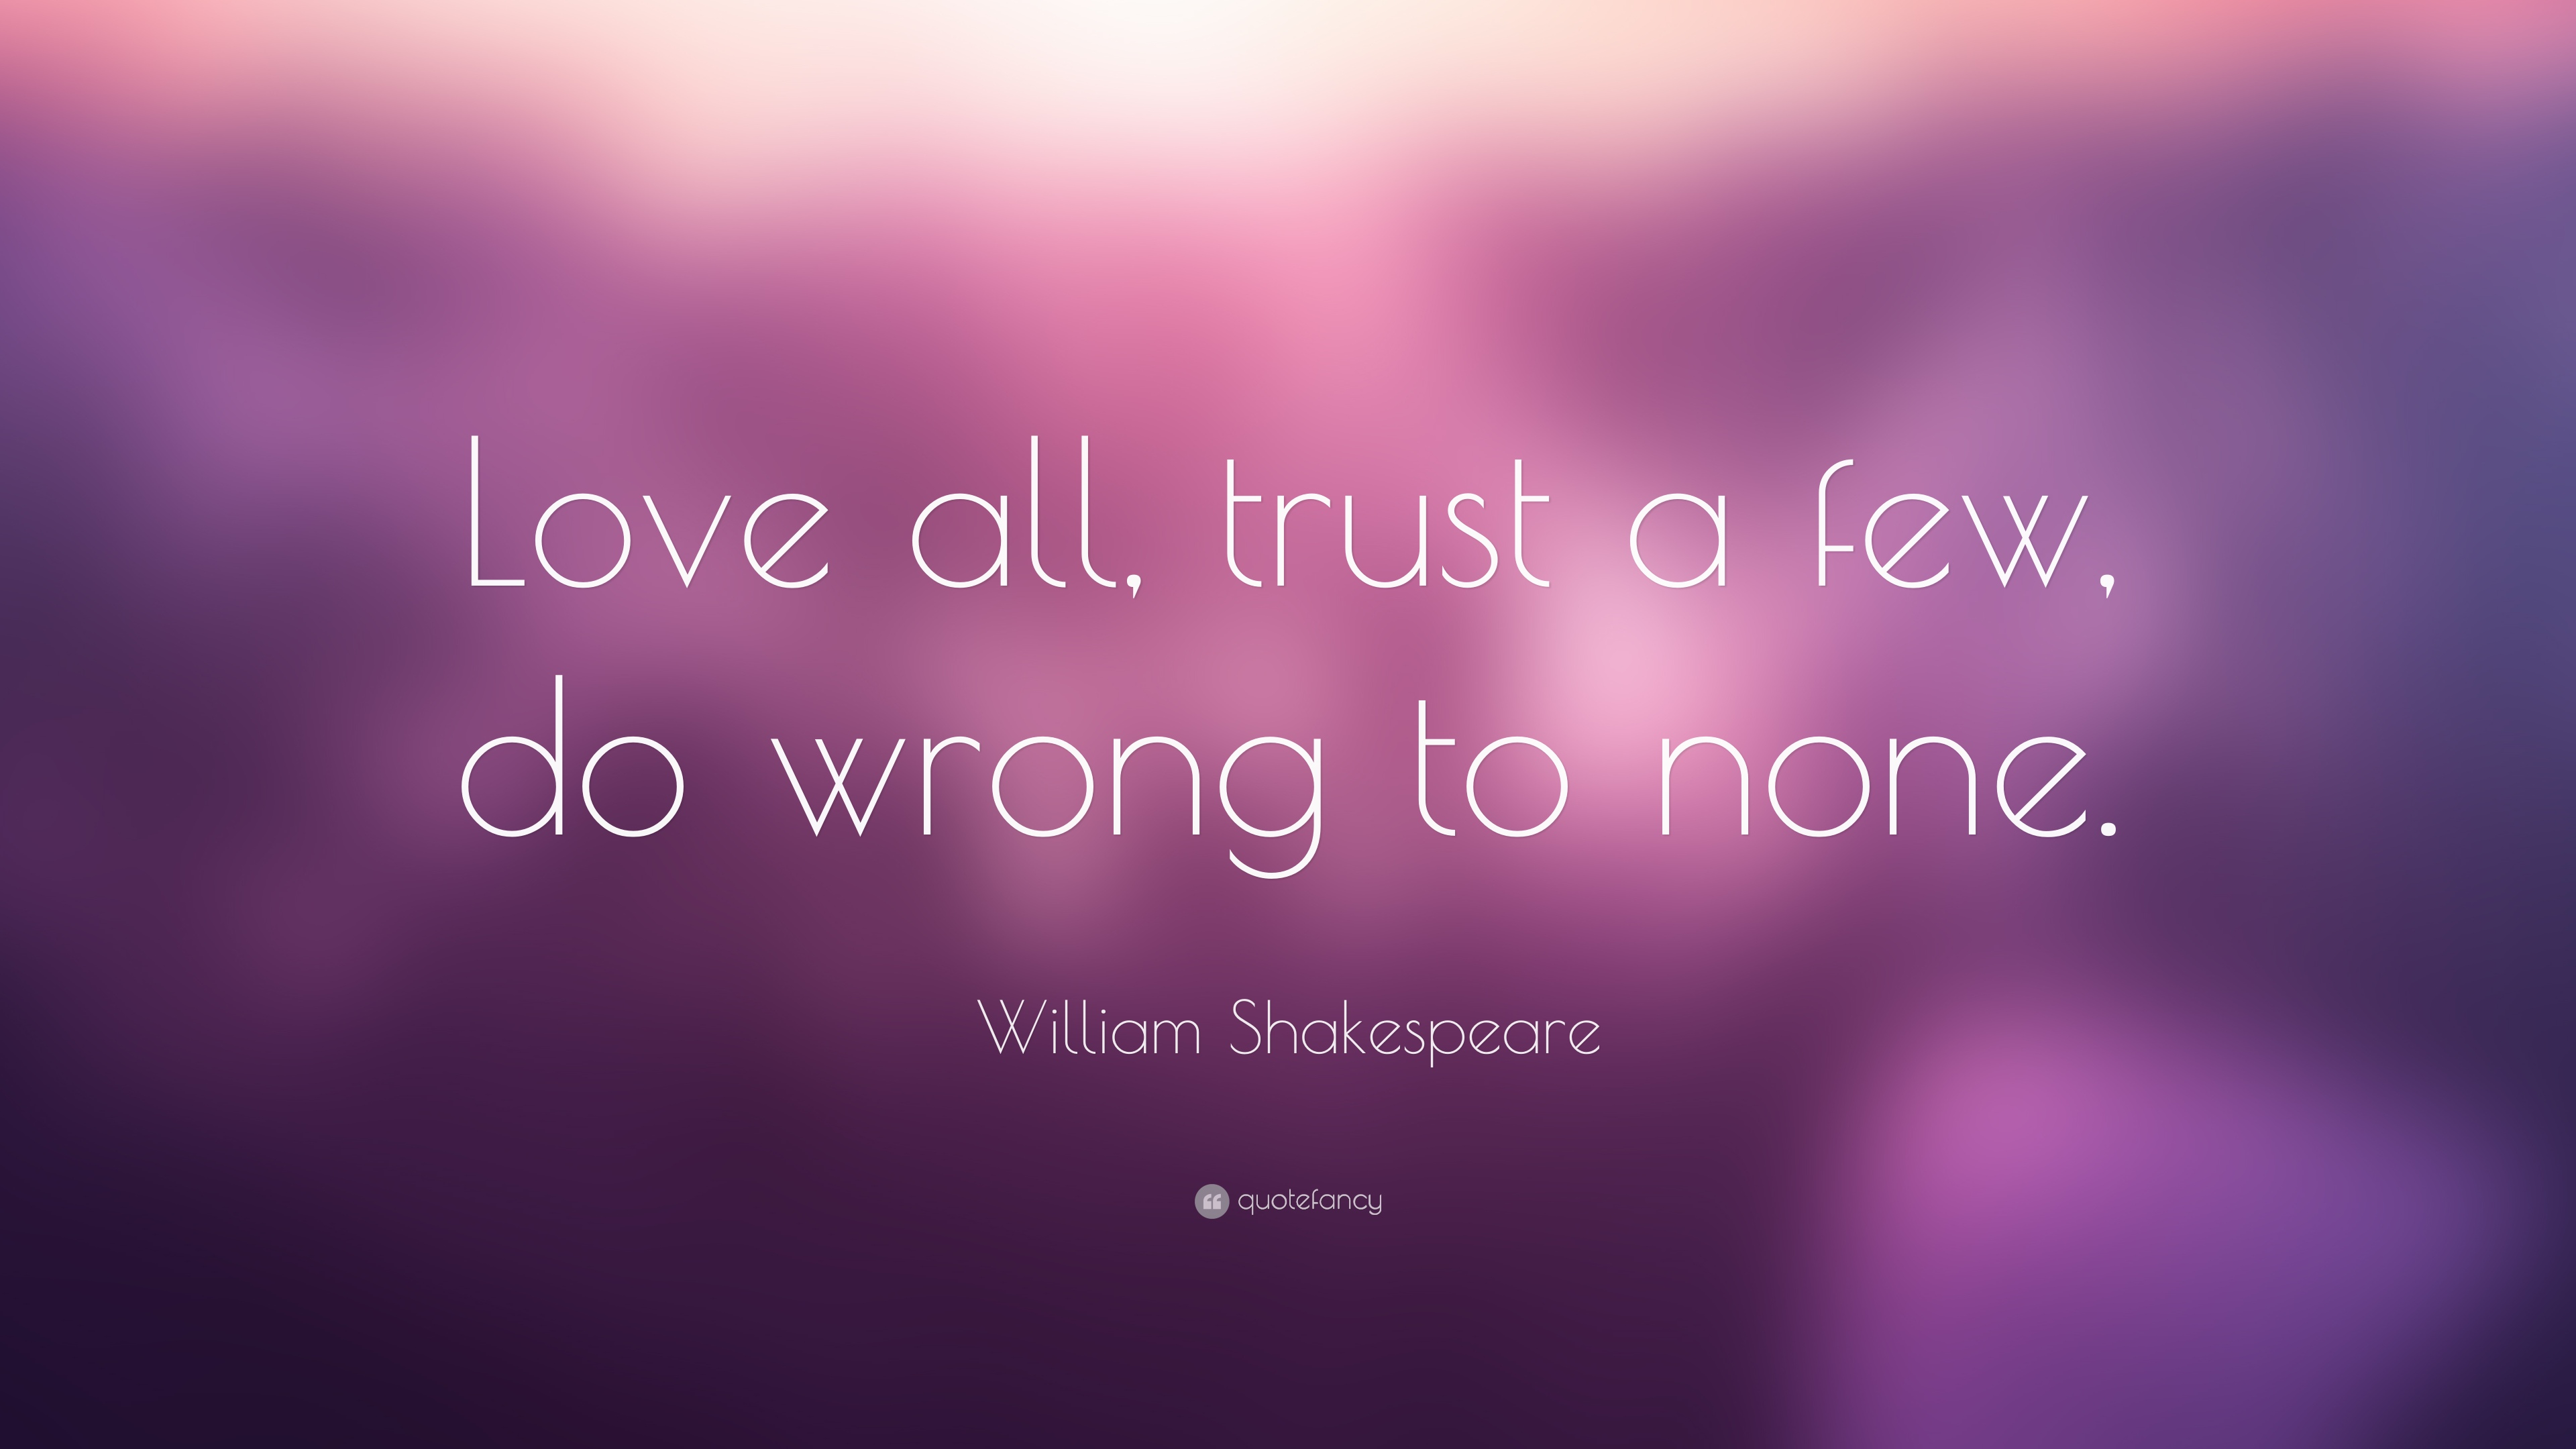 William Shakespeare Quote: ?Love all, trust a few, do wrong to none.? (22 wallpapers) - Quotefancy